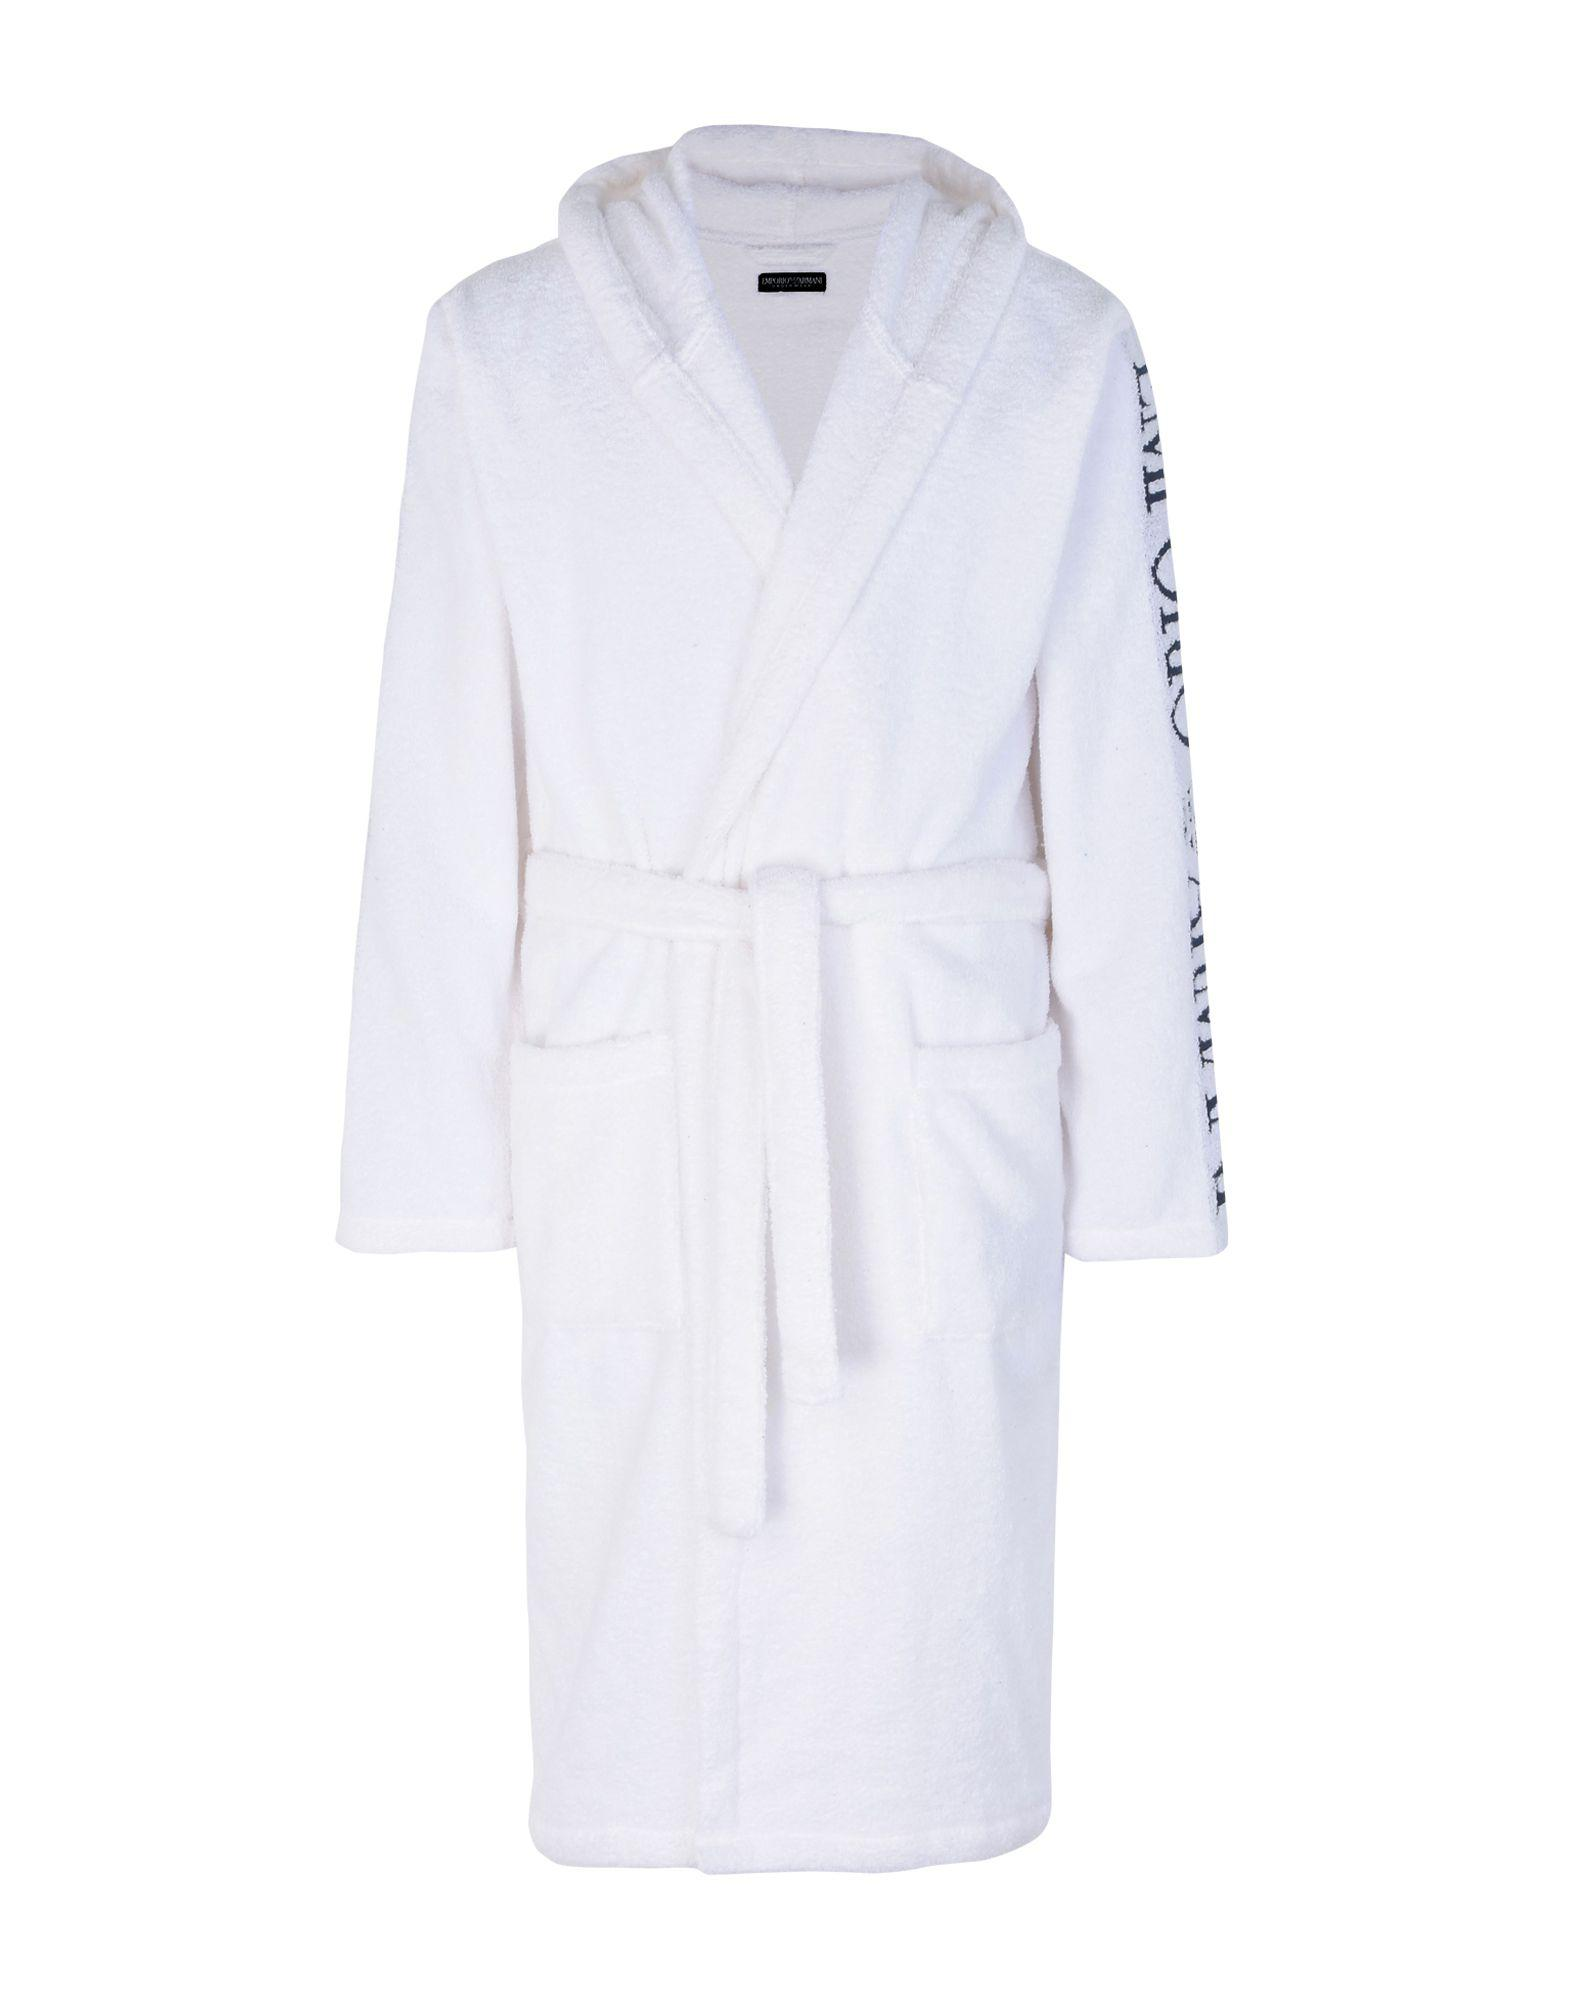 Emporio Armani Towelling Dressing Gown in White for Men - Lyst